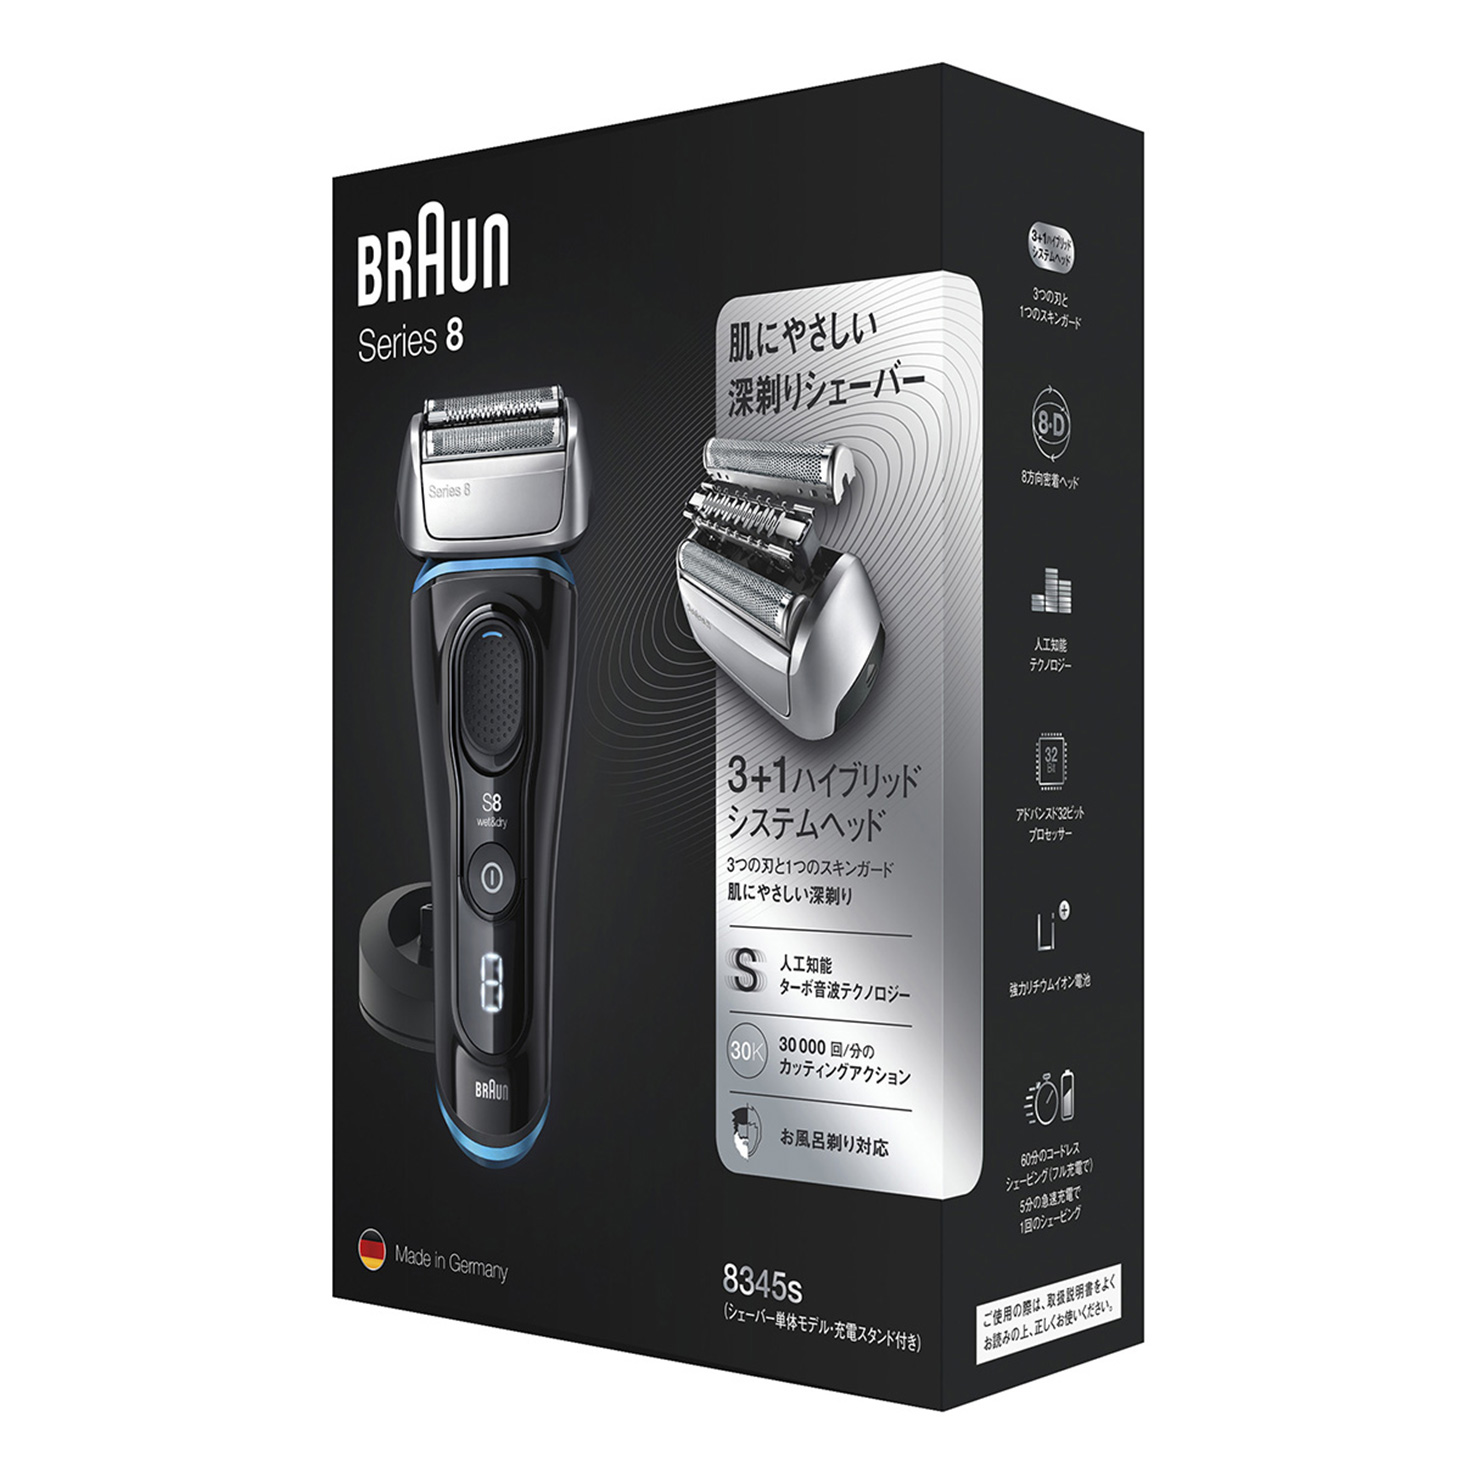 Series 8 8345s shaver - Packaging